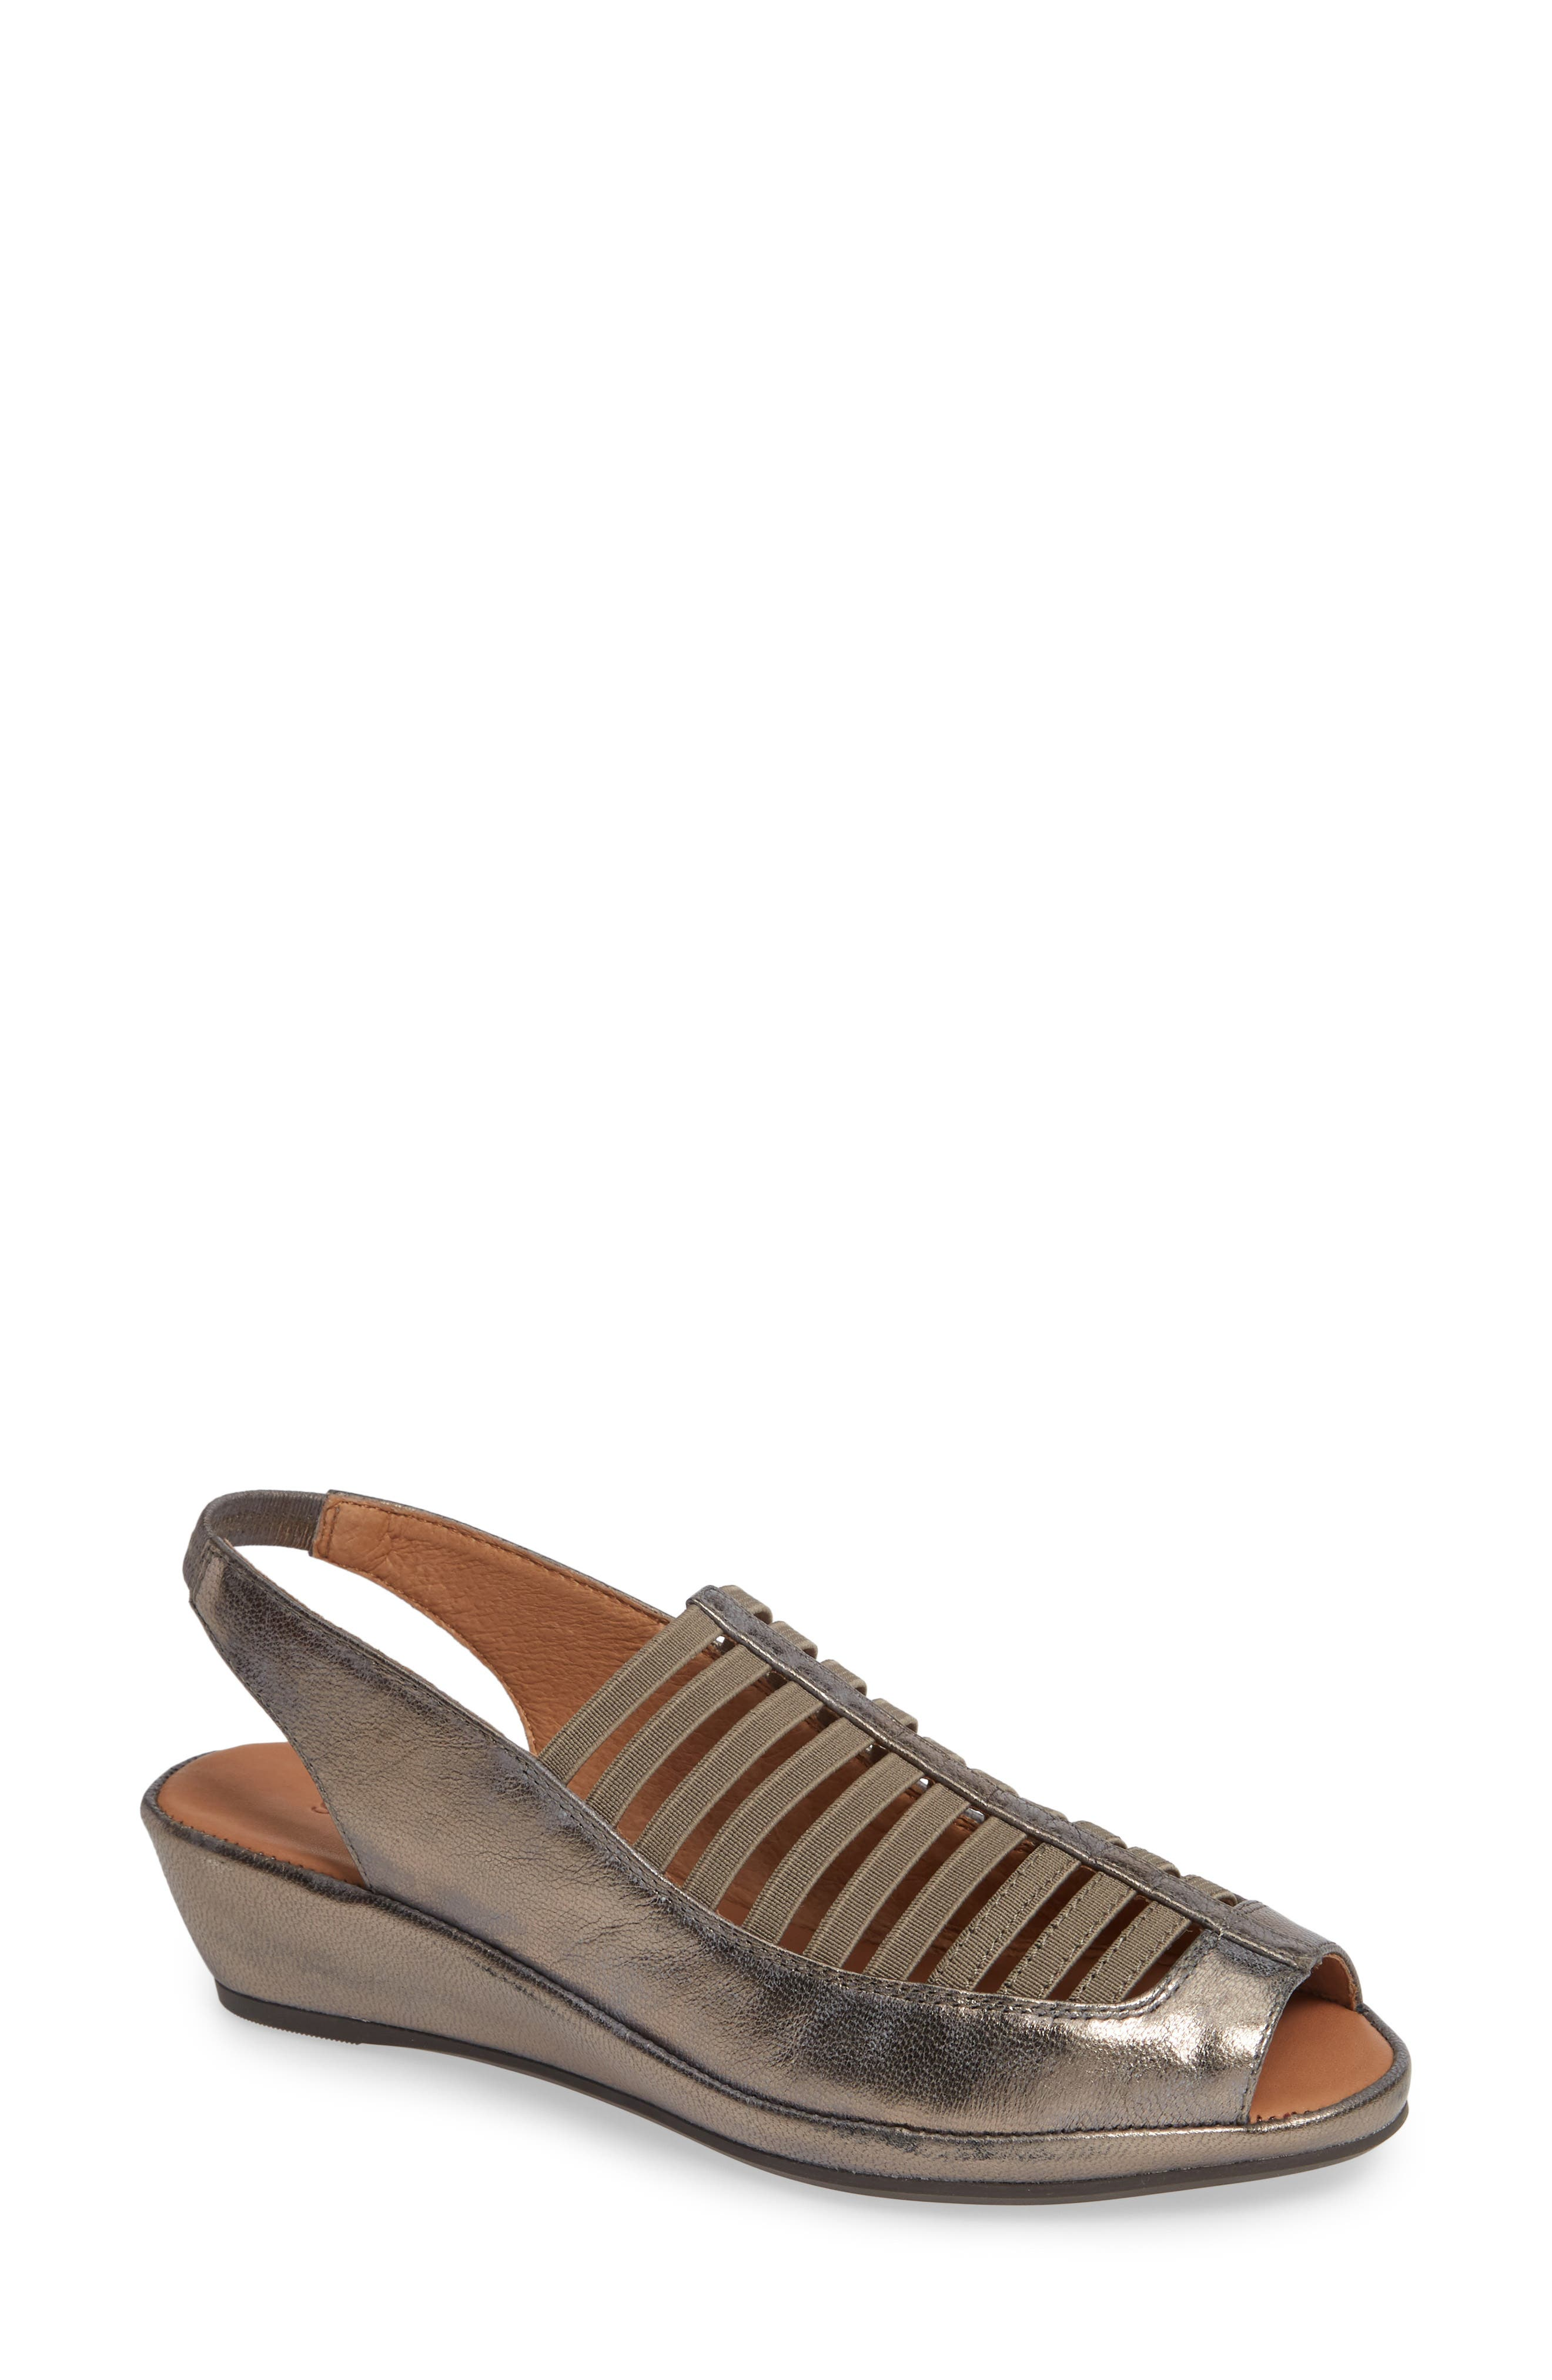 by Kenneth Cole 'Lee' Sandal,                             Main thumbnail 1, color,